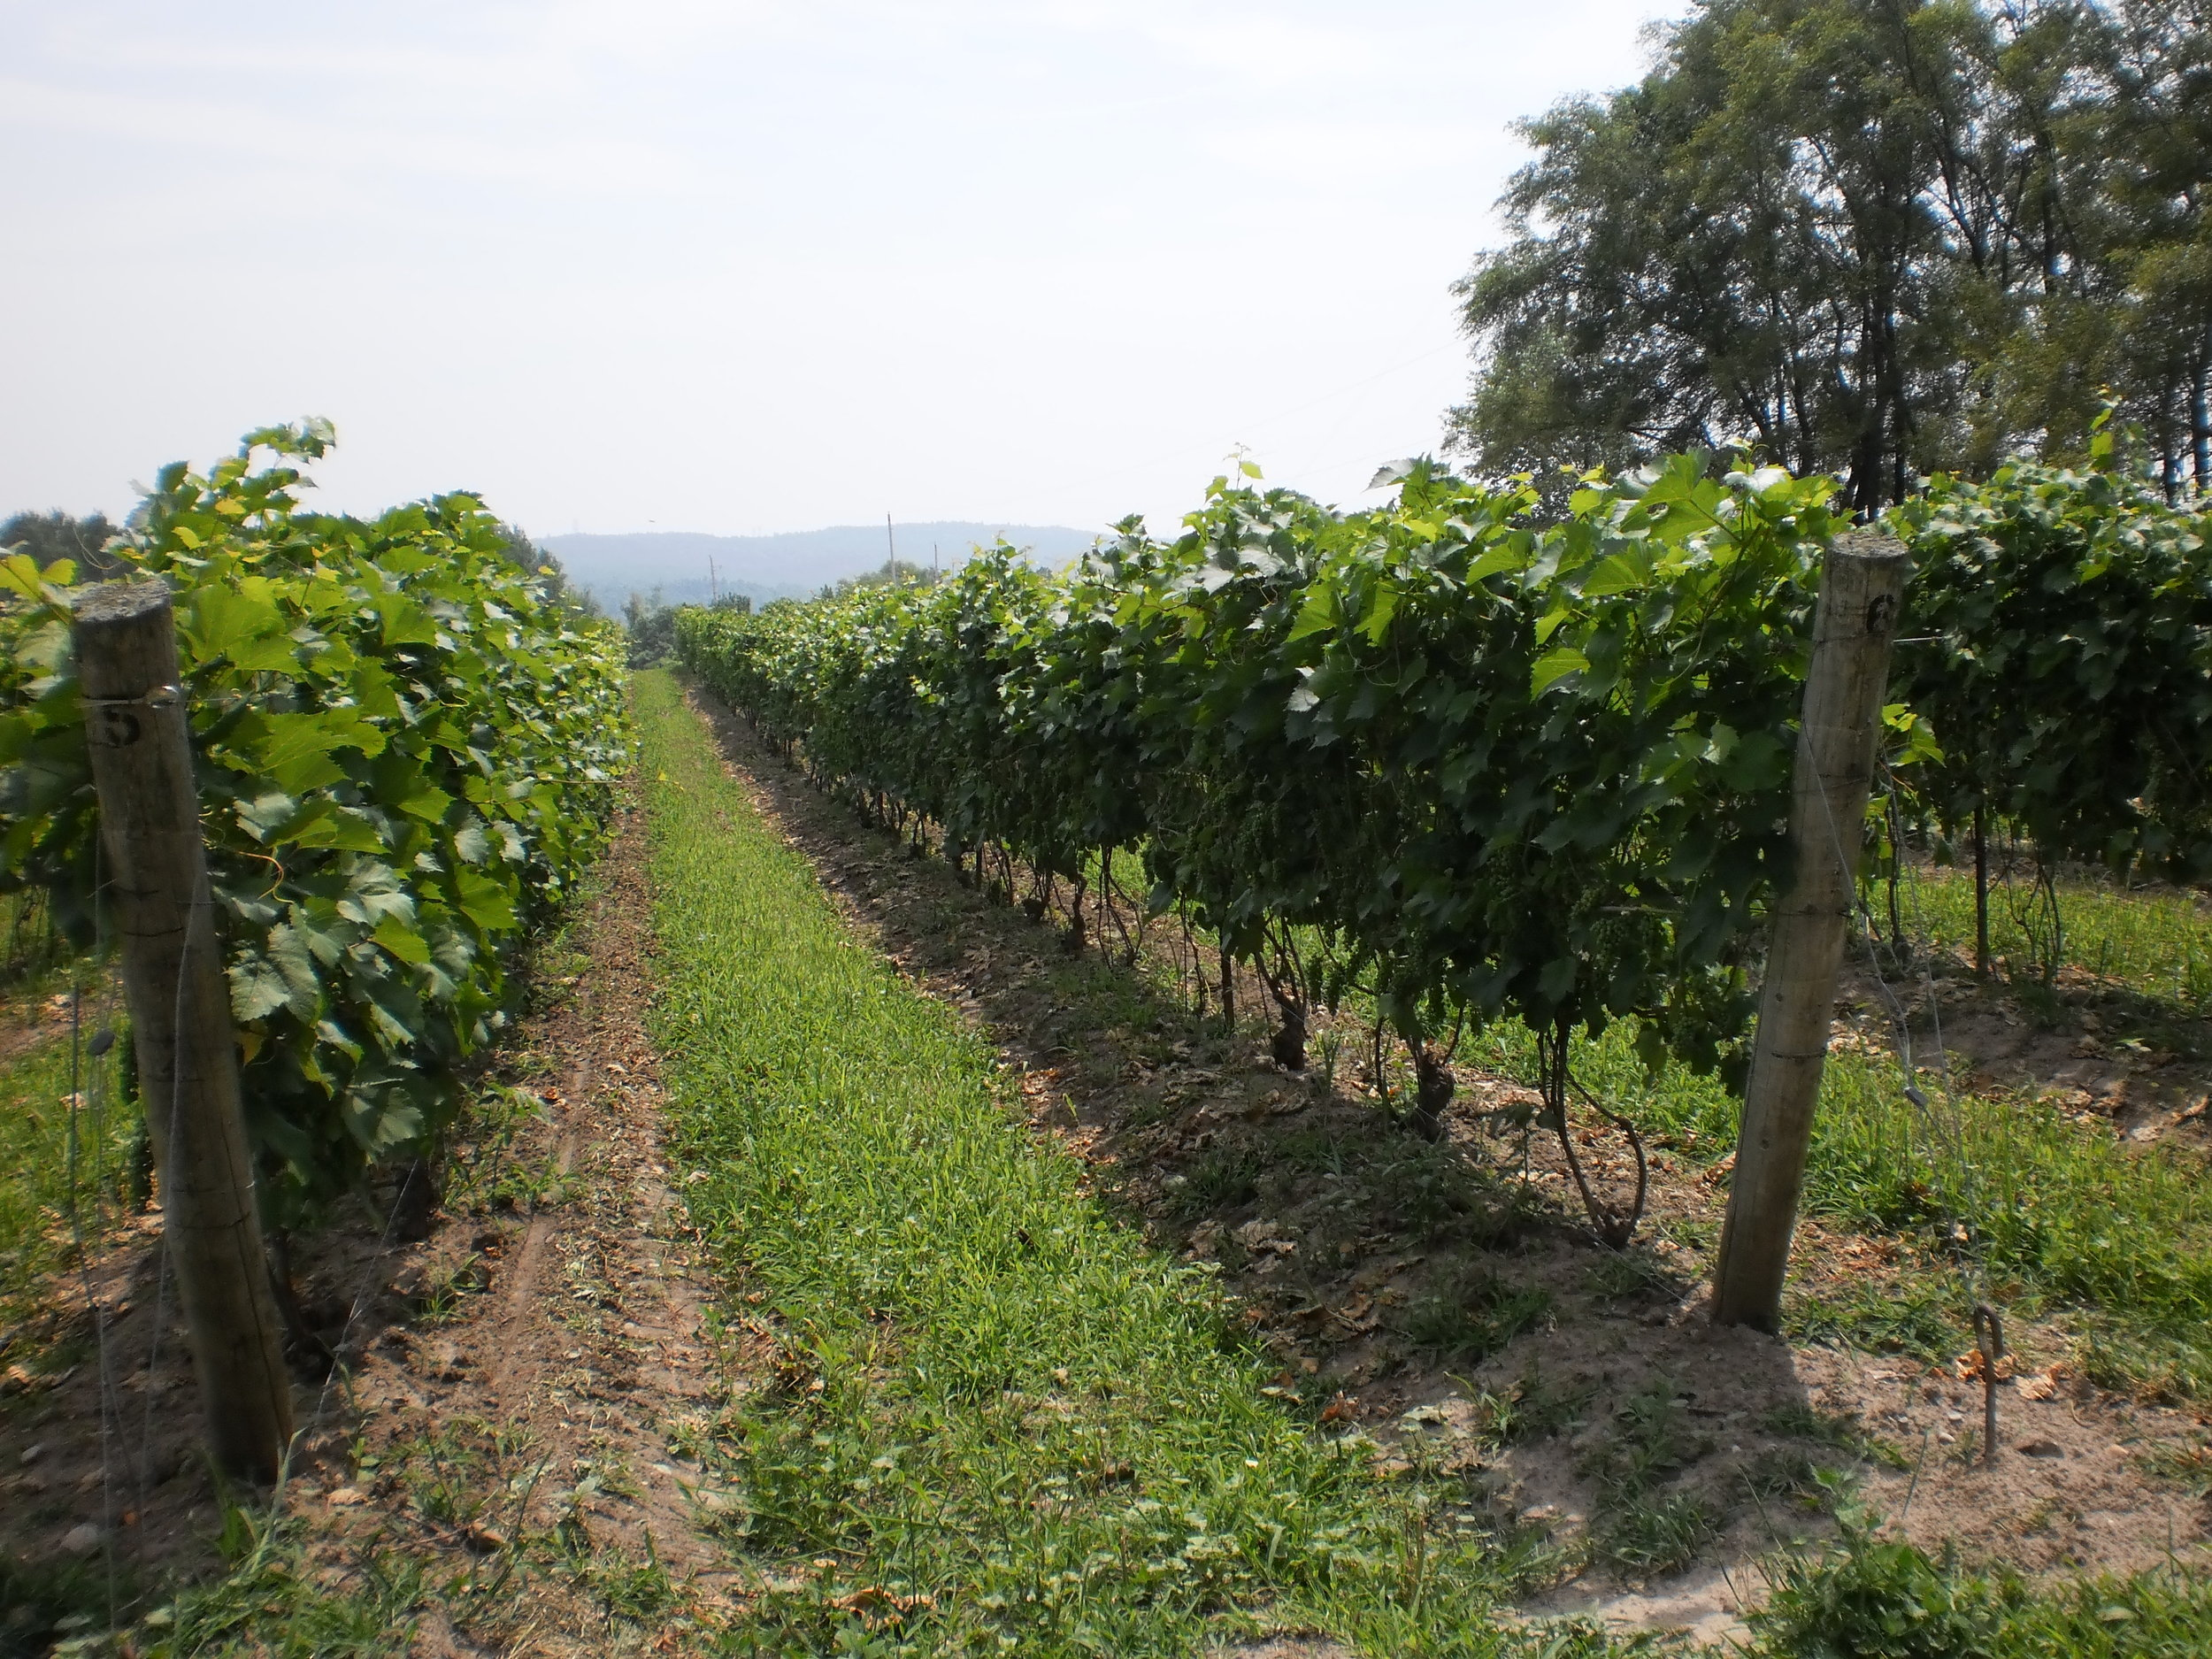 Cover crop between rows is an option some vineyard owners opt for.